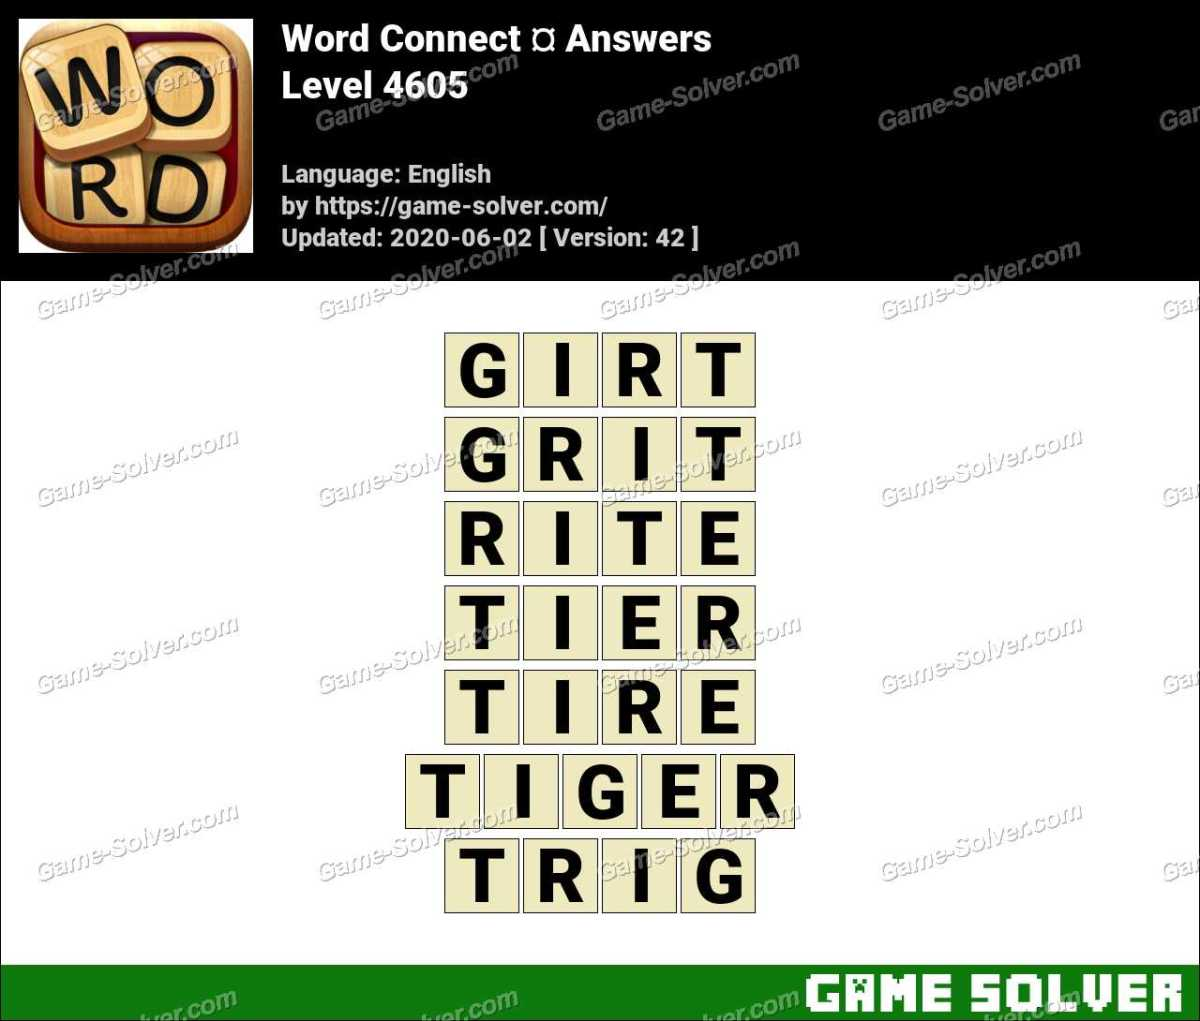 Word Connect Level 4605 Answers